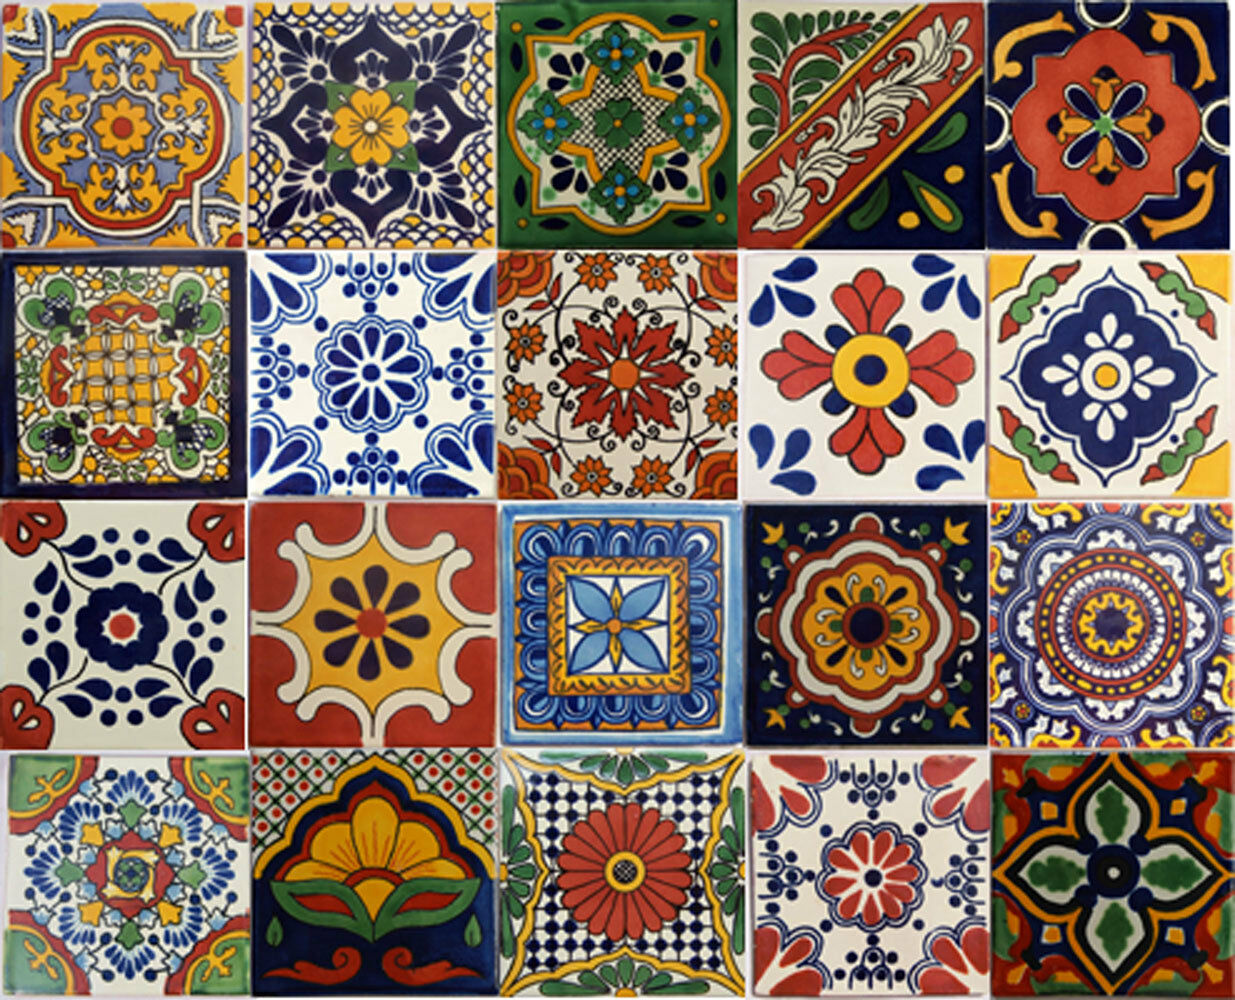 100 PCS Talavera 6X6 Handmade Ceramic Stair Risers Tile Mexican MIX 1 Of  1FREE Shipping See More